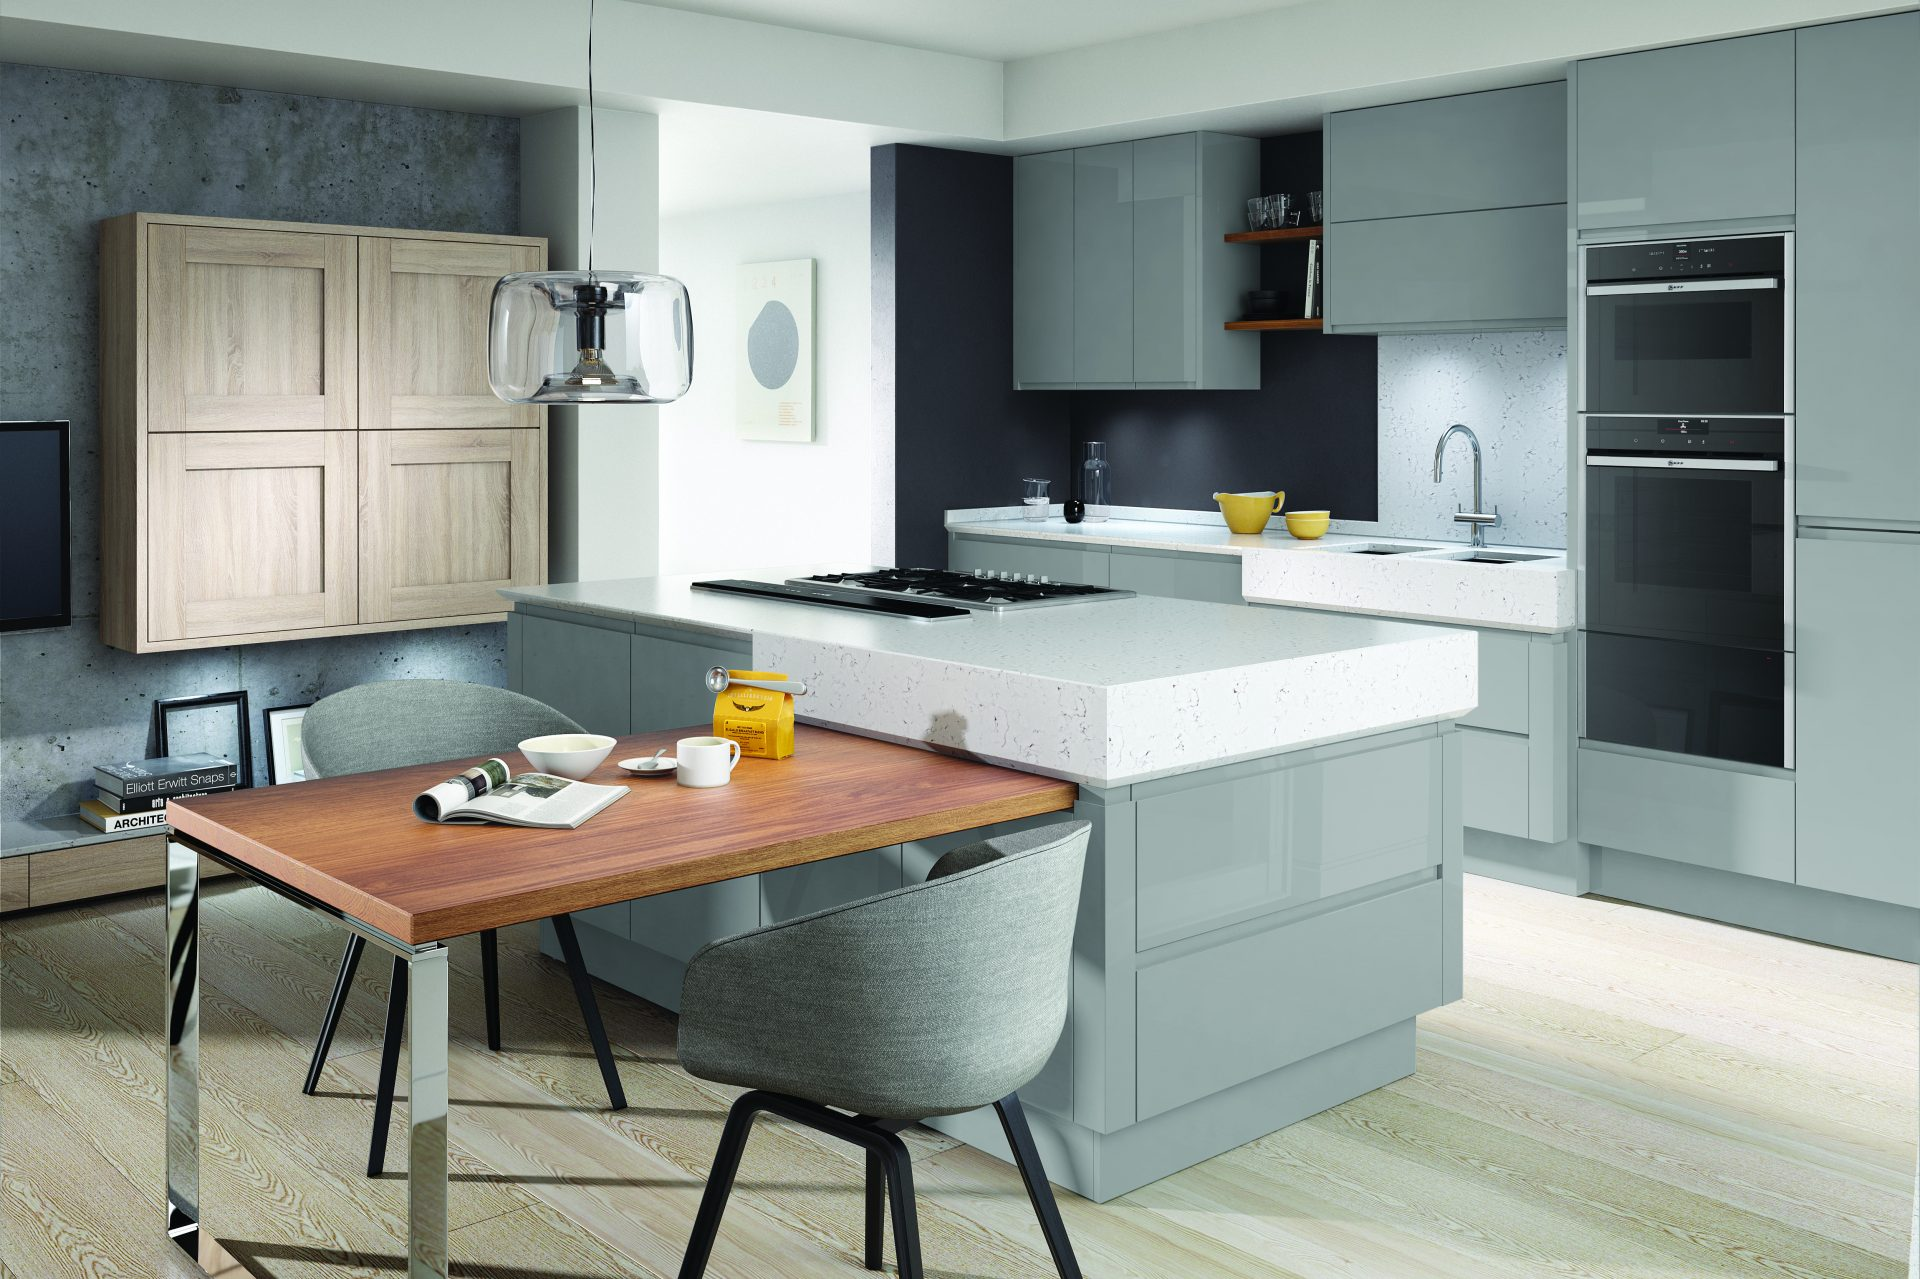 How to get ideas & designs for new kitchens | Heather Johnson Home ...